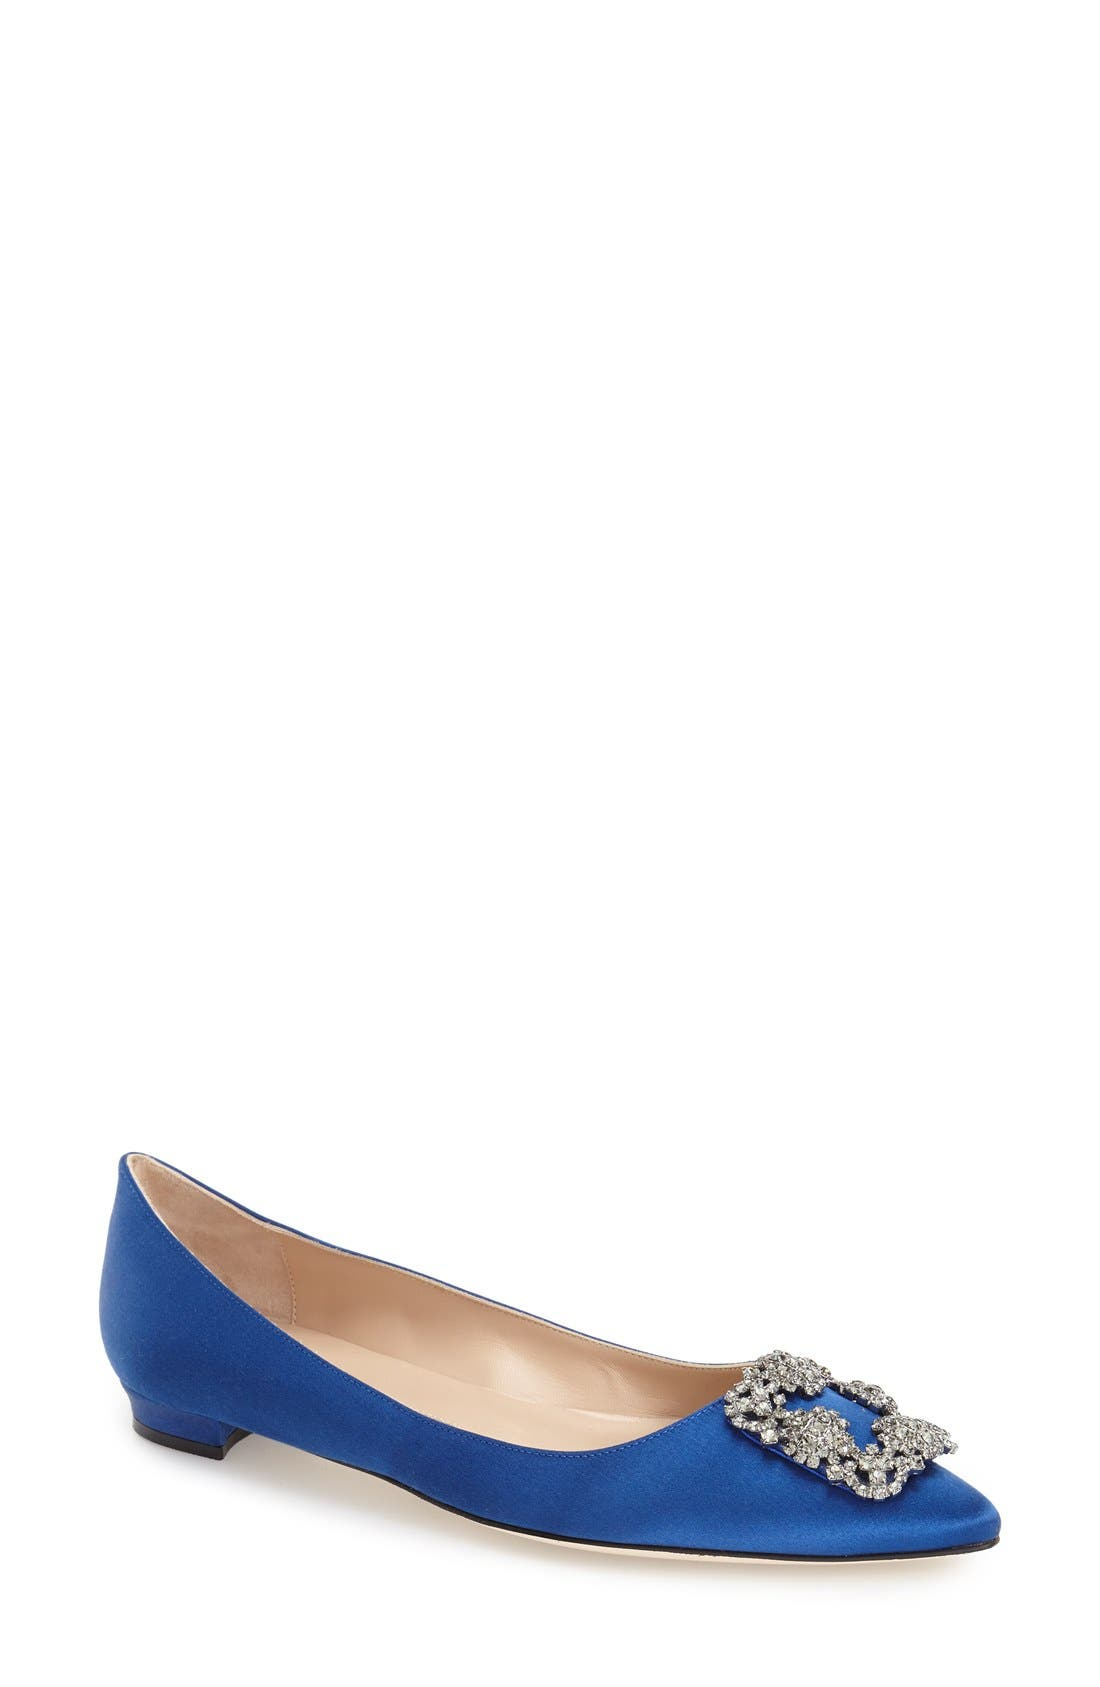 Alternate Image 1 Selected - Manolo Blahnik Hangisi Flat (Women)